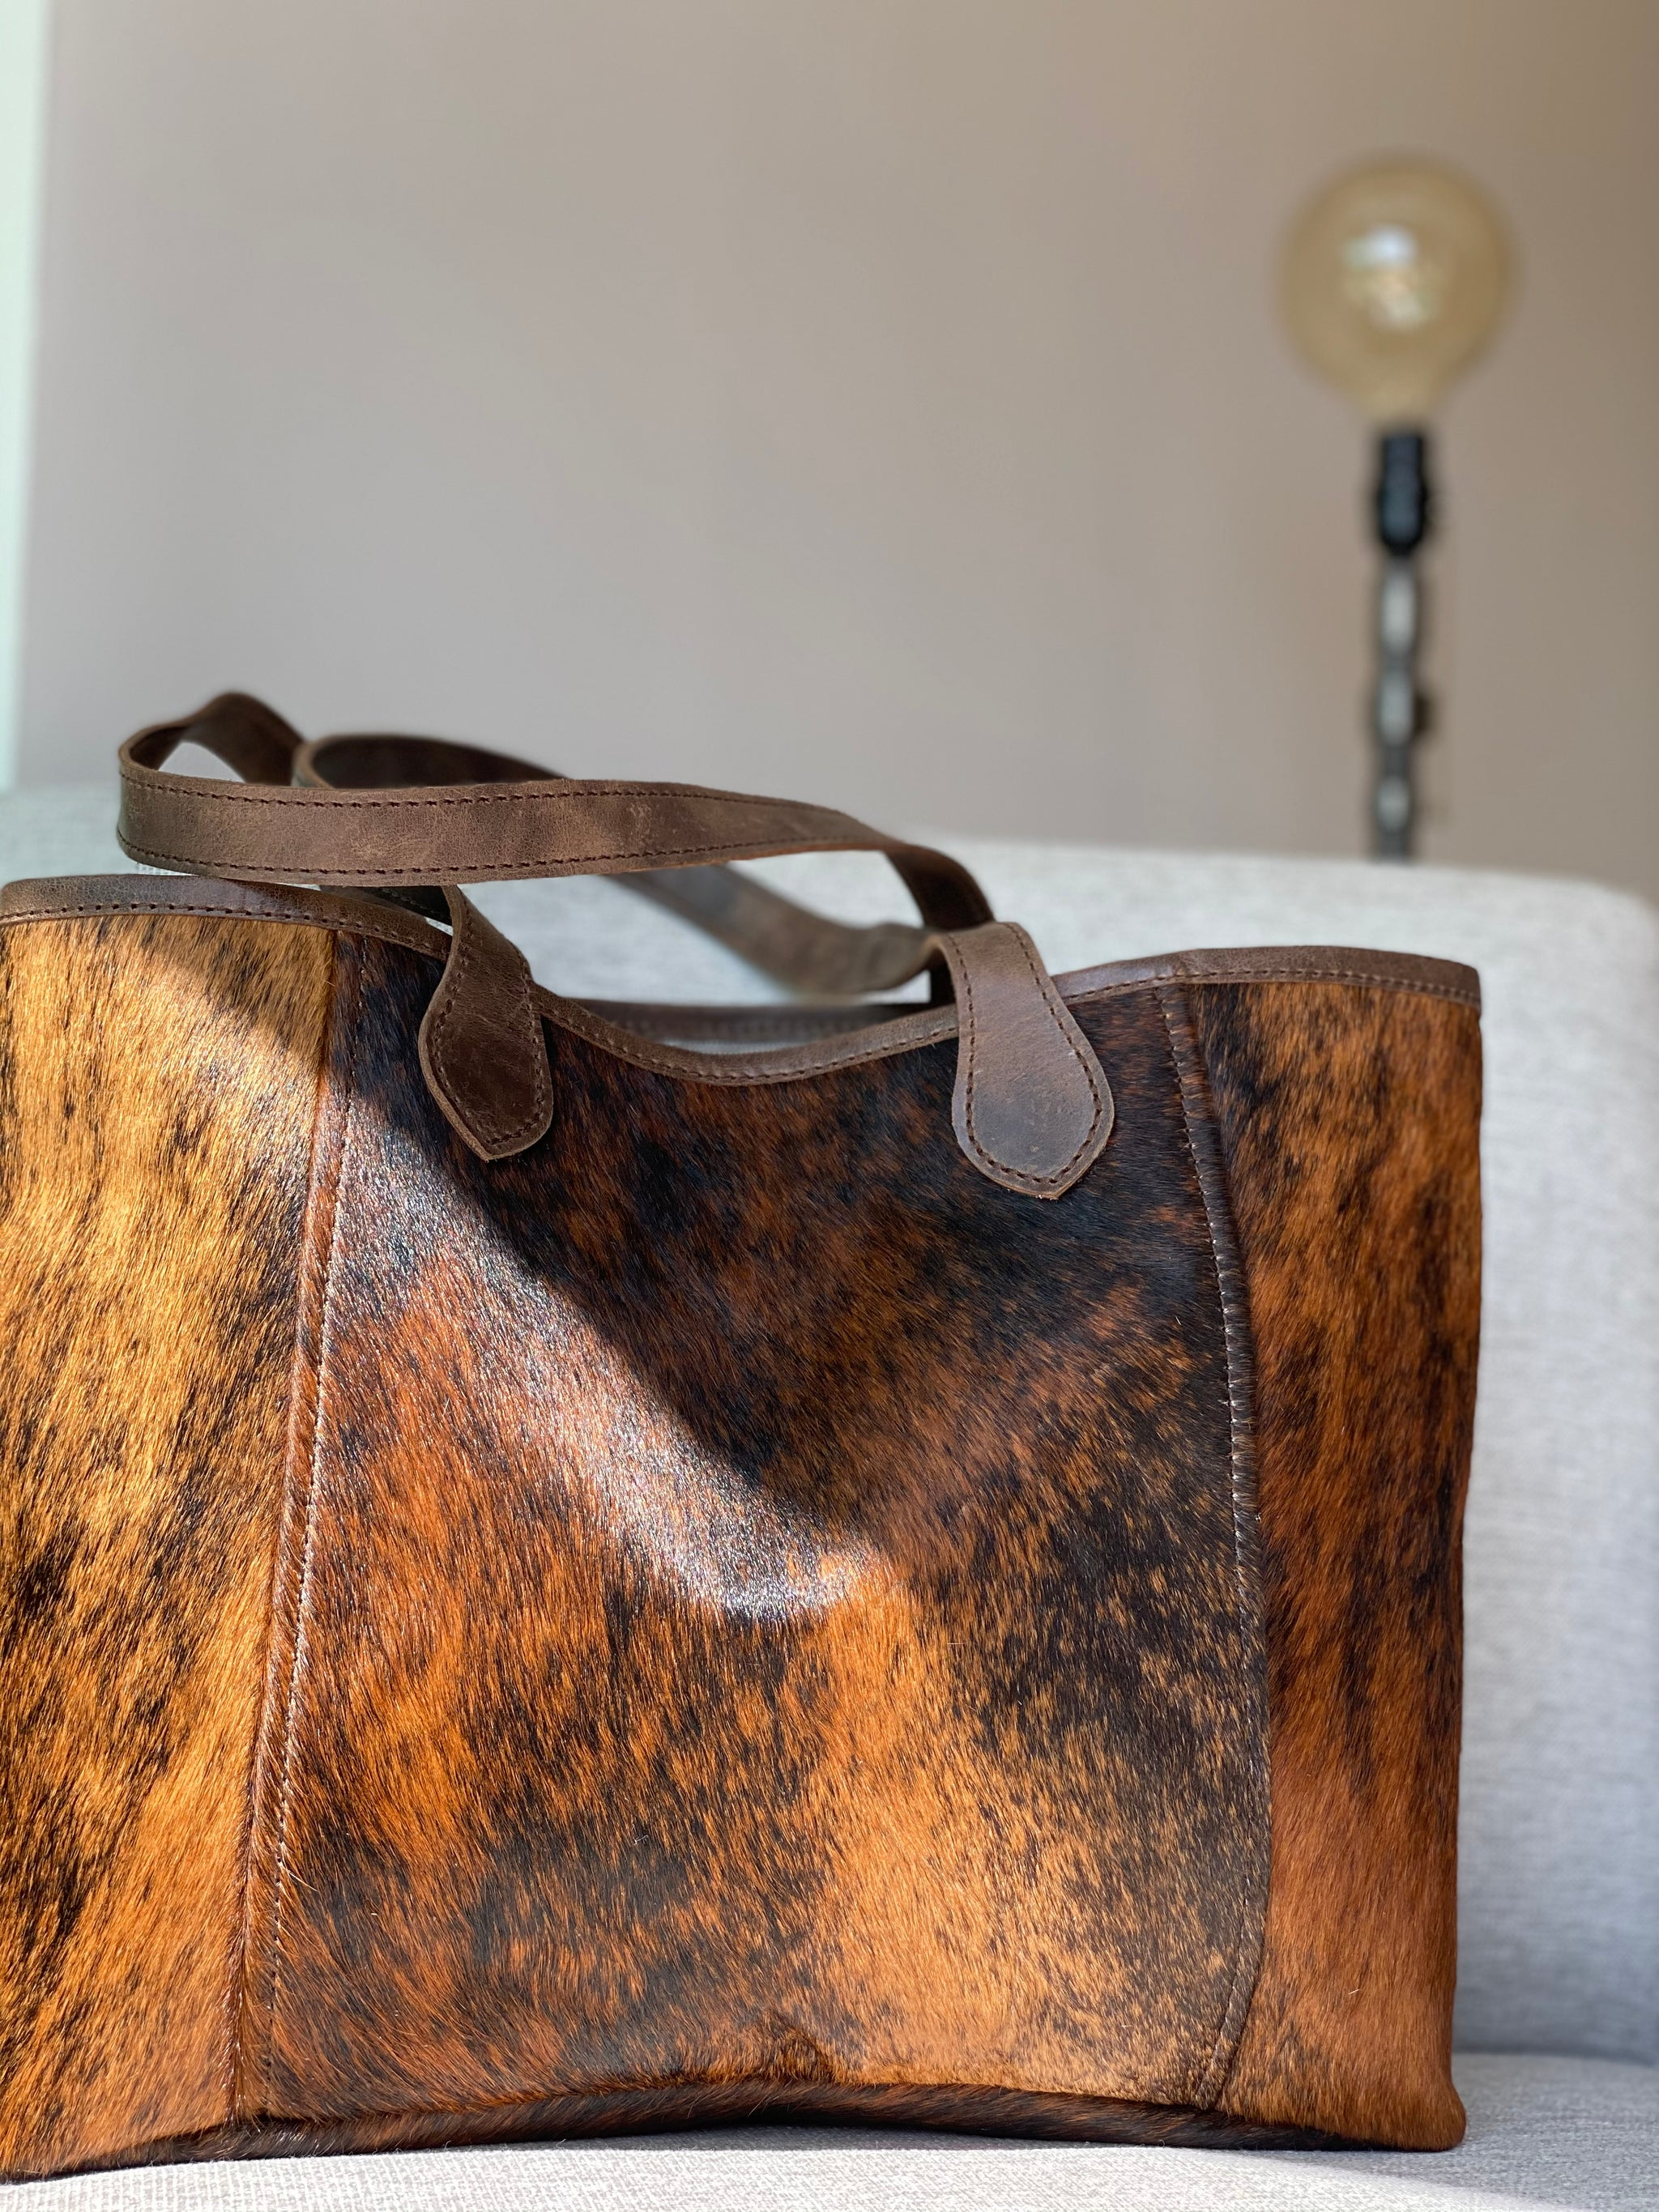 The Grocery Getter Tote - Cowhide or Leather getter cowhide tote